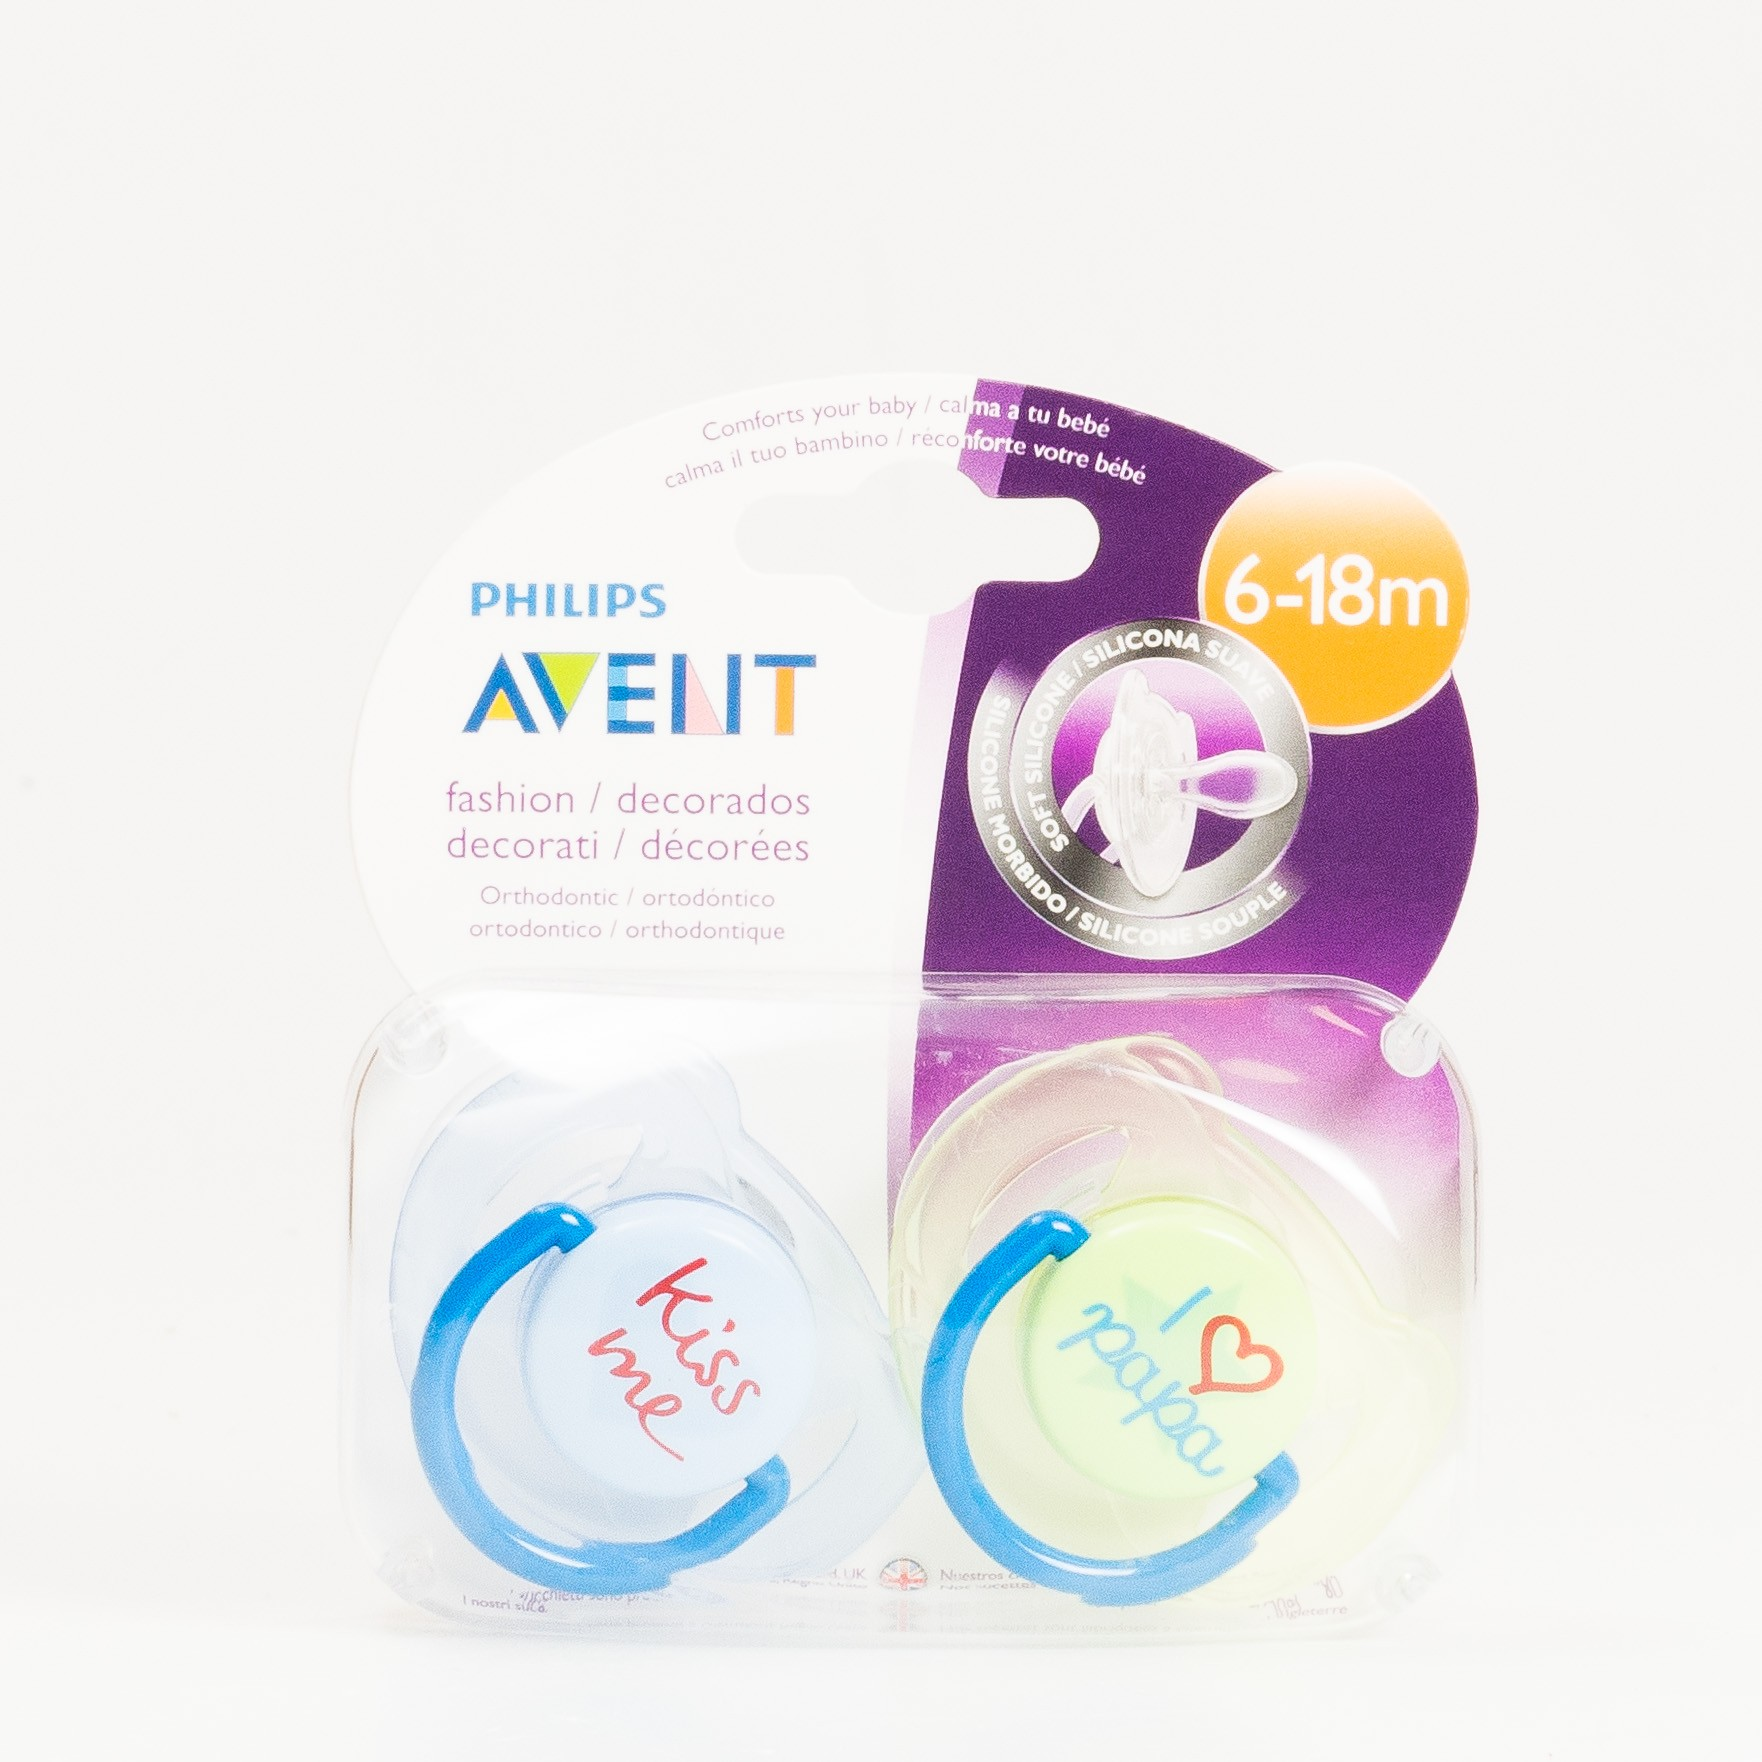 Avent Chupetes Silicona 6-18 m Papa, 2 uds.